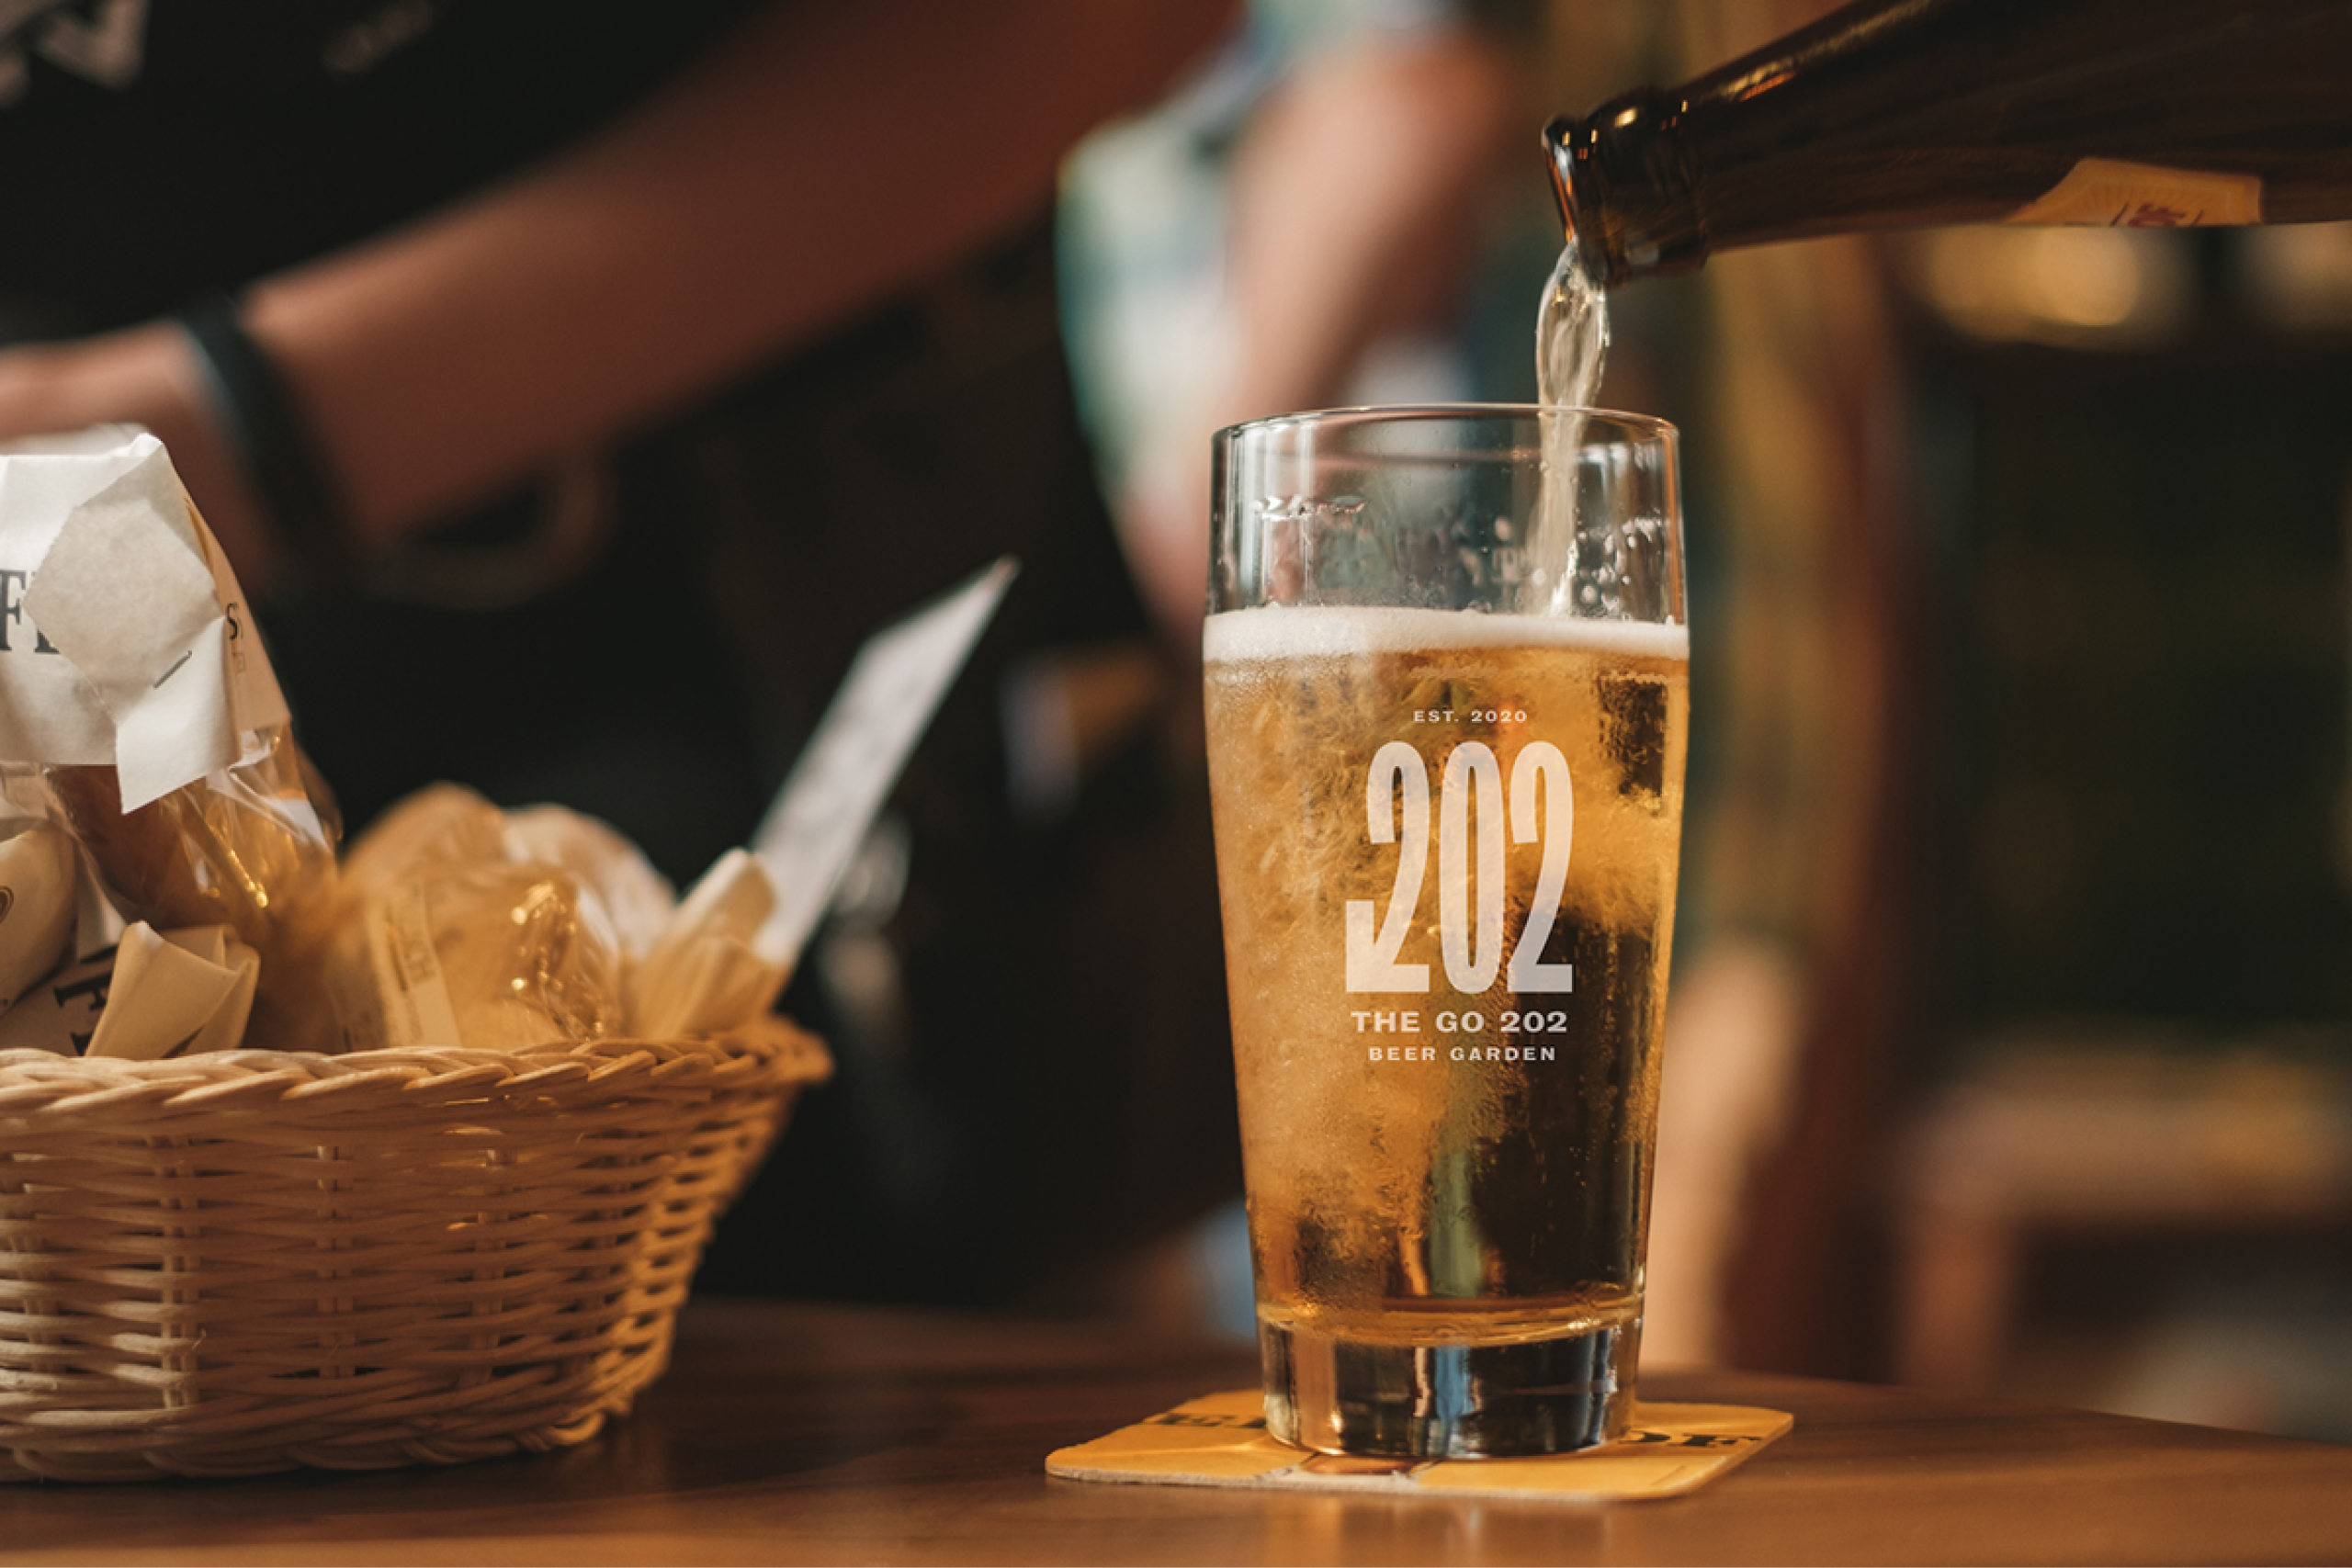 The Go 202 logo shown on a beer glass while beer is being poured from a bottle